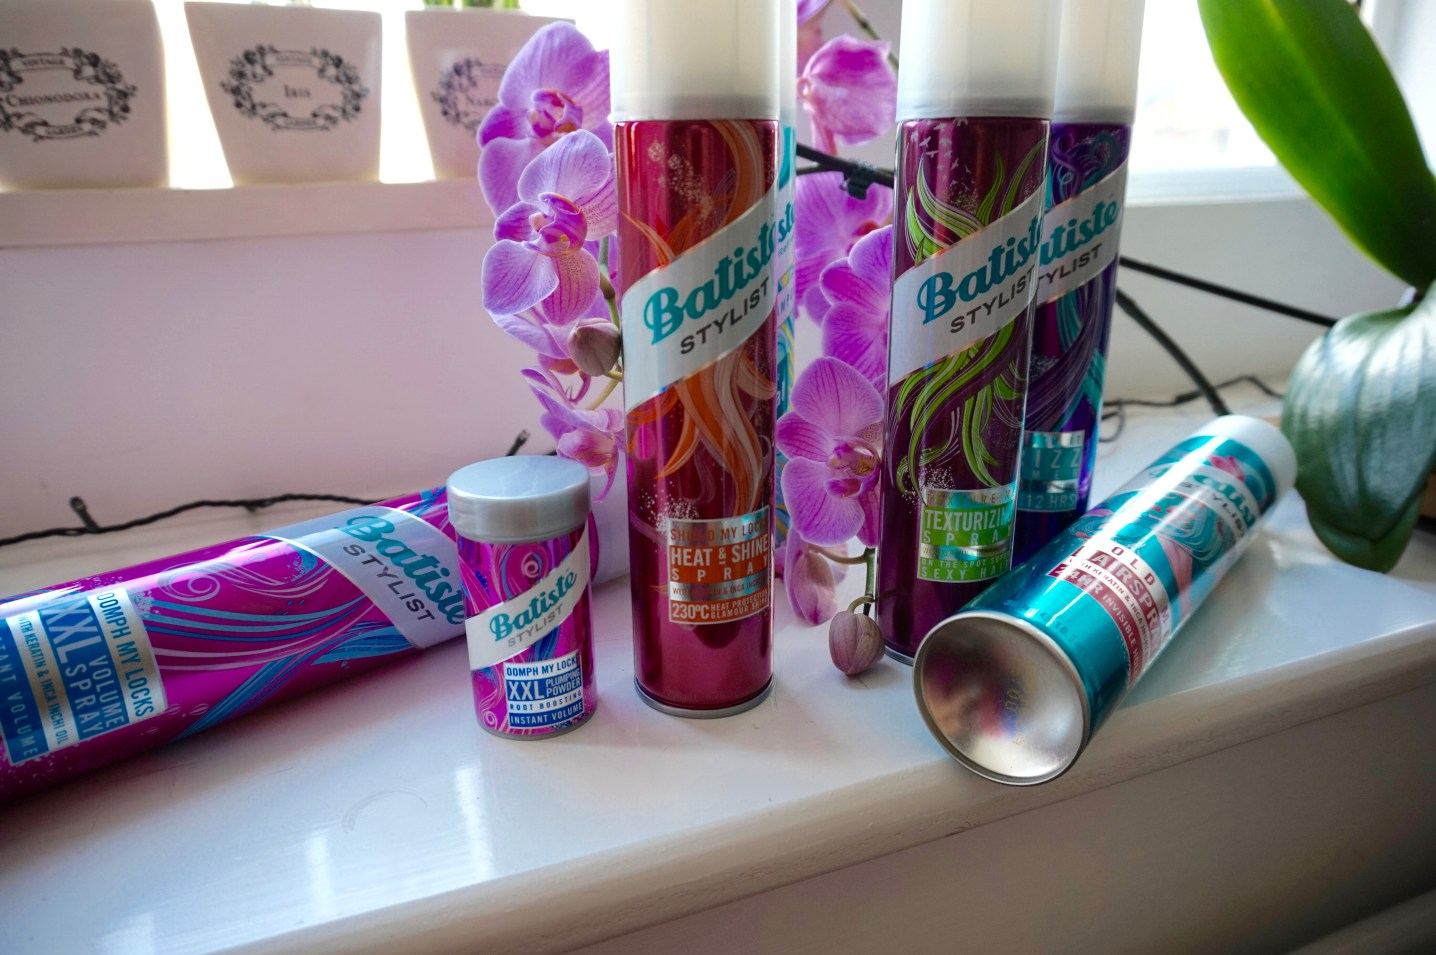 PHOTO INSERT: Batiste Products